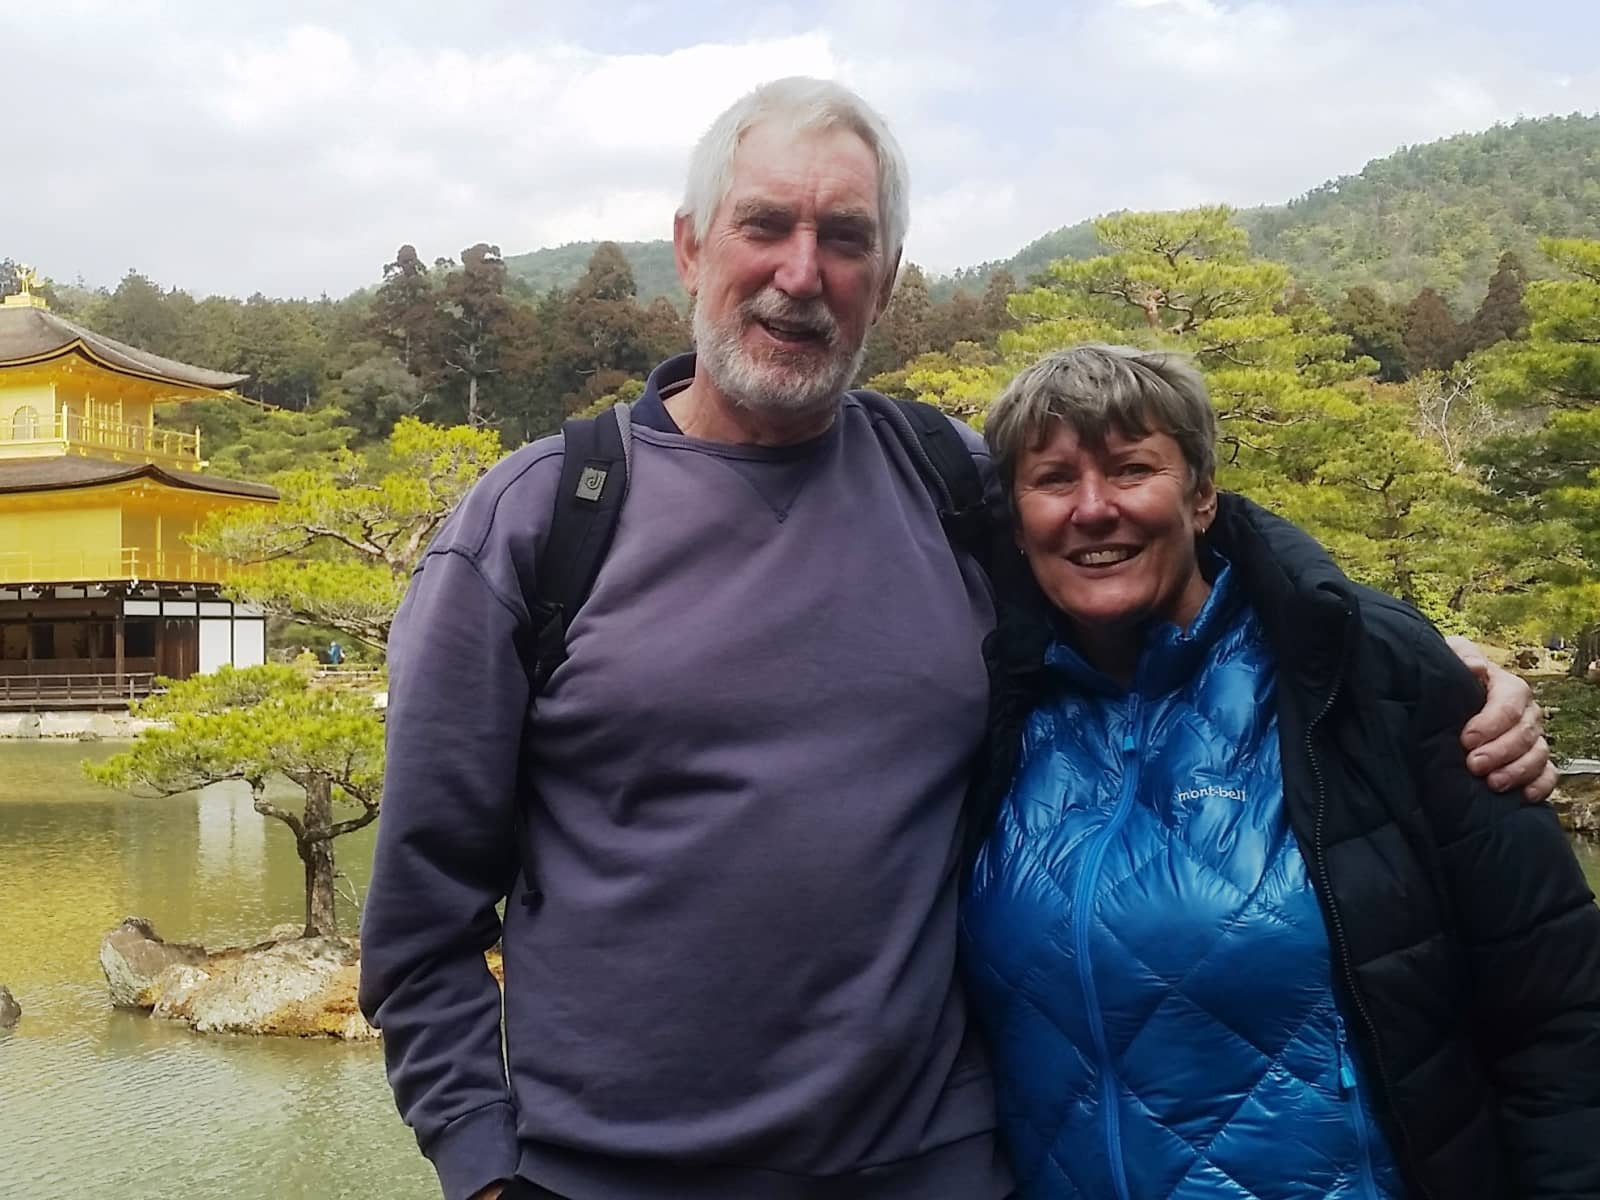 Paul & Therese from Sydney, New South Wales, Australia